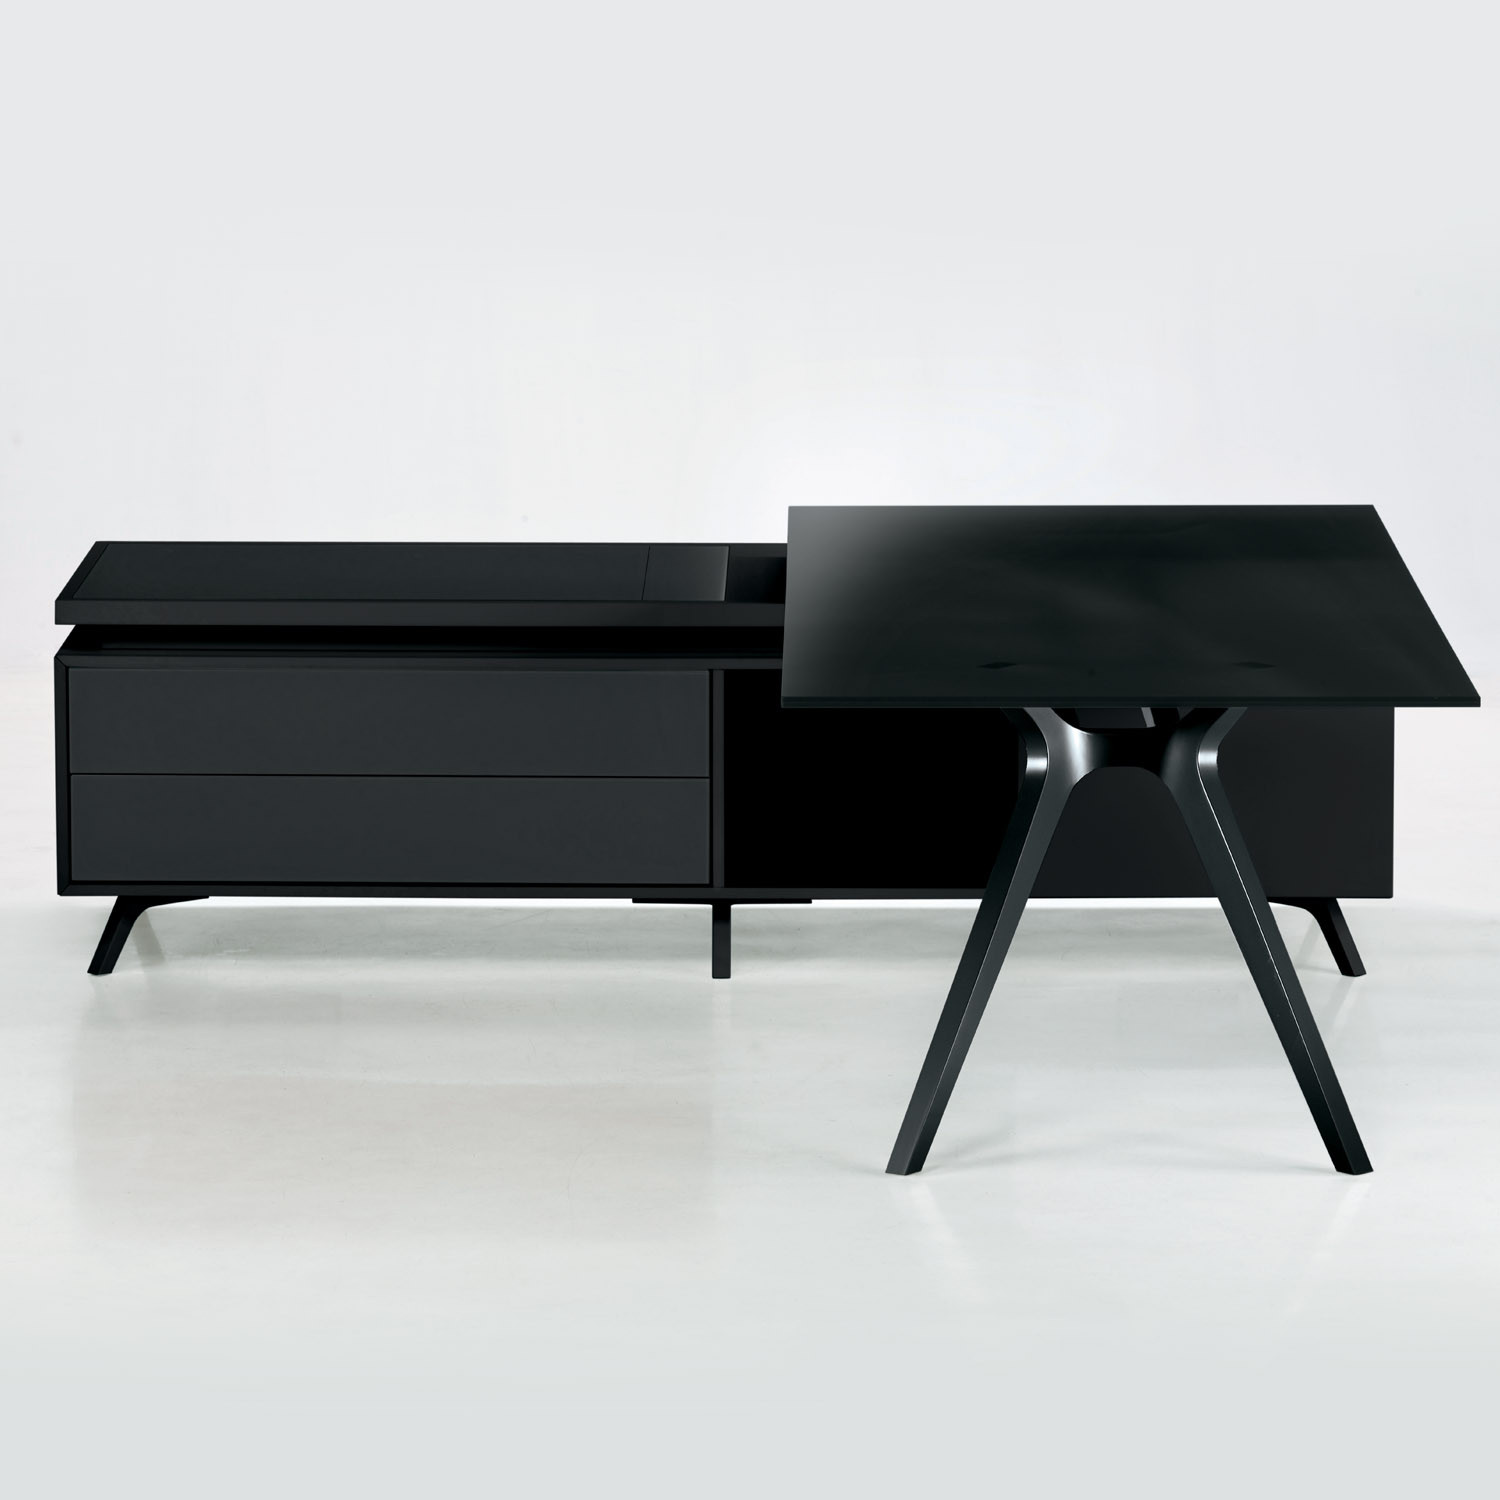 DR Executive Desk with supporting storage